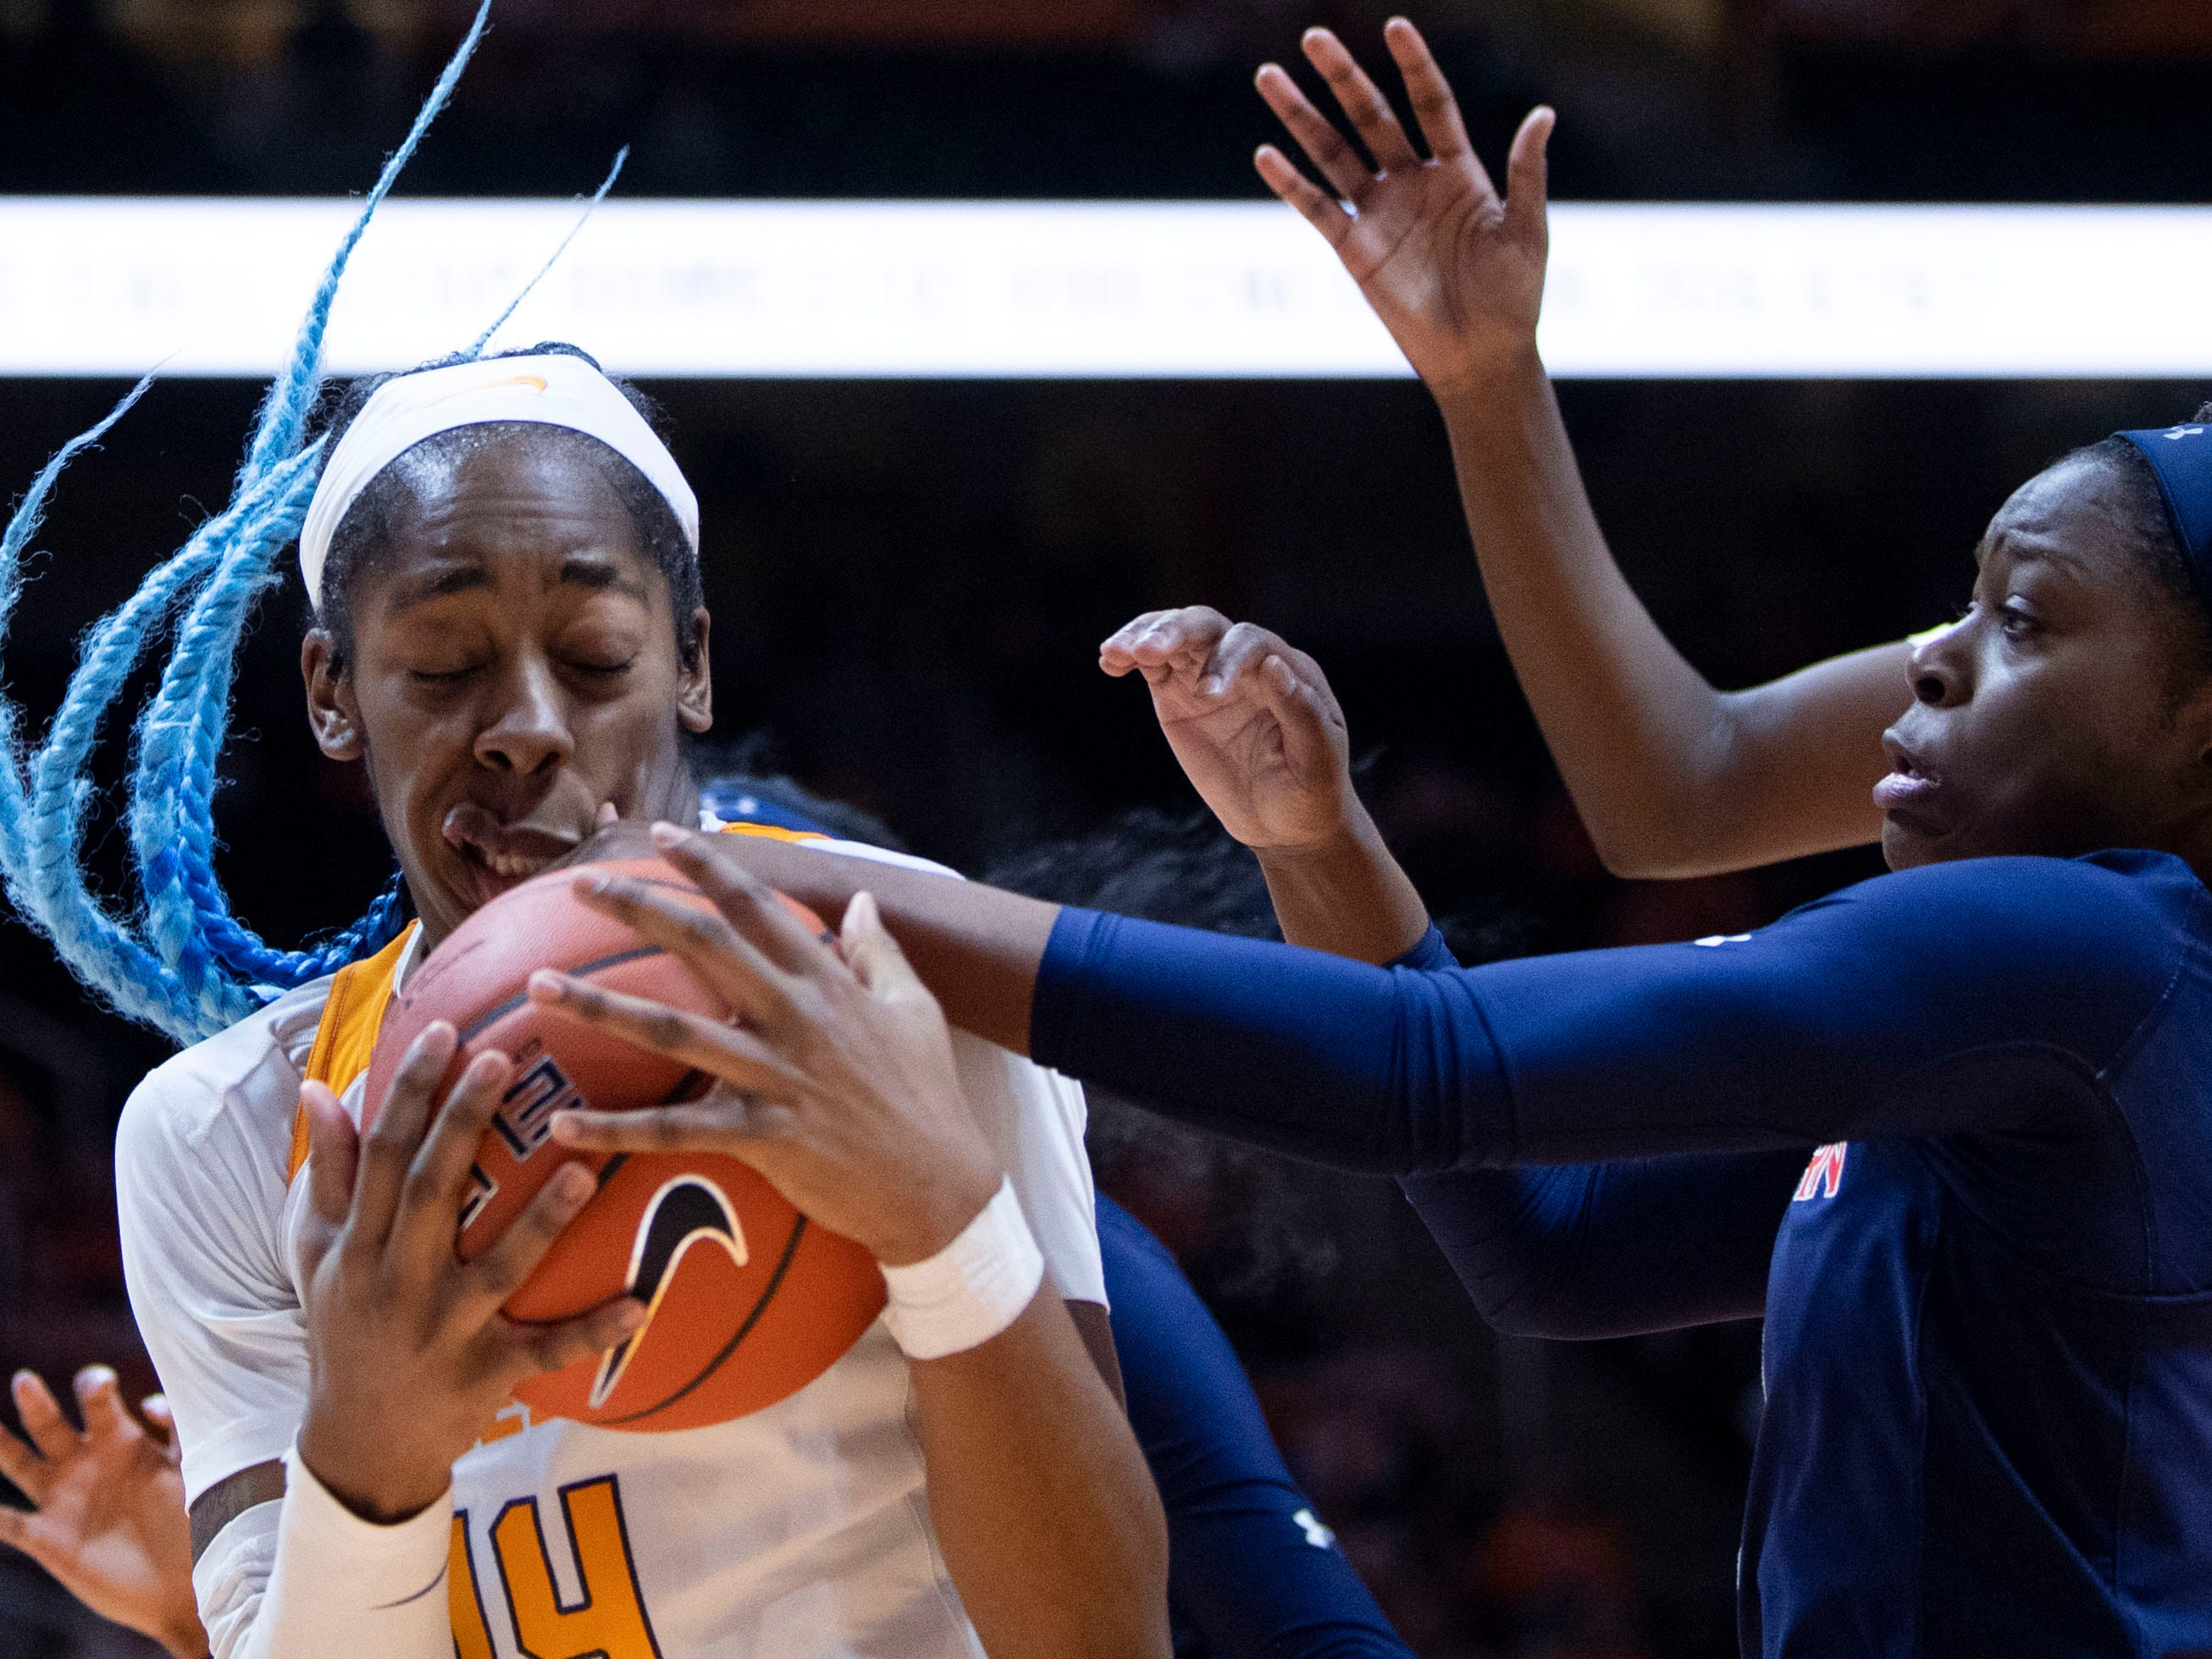 Tennessee's Zaay Green (14) grabs the rebound in the game against Auburn on Thursday, February 14, 2019.